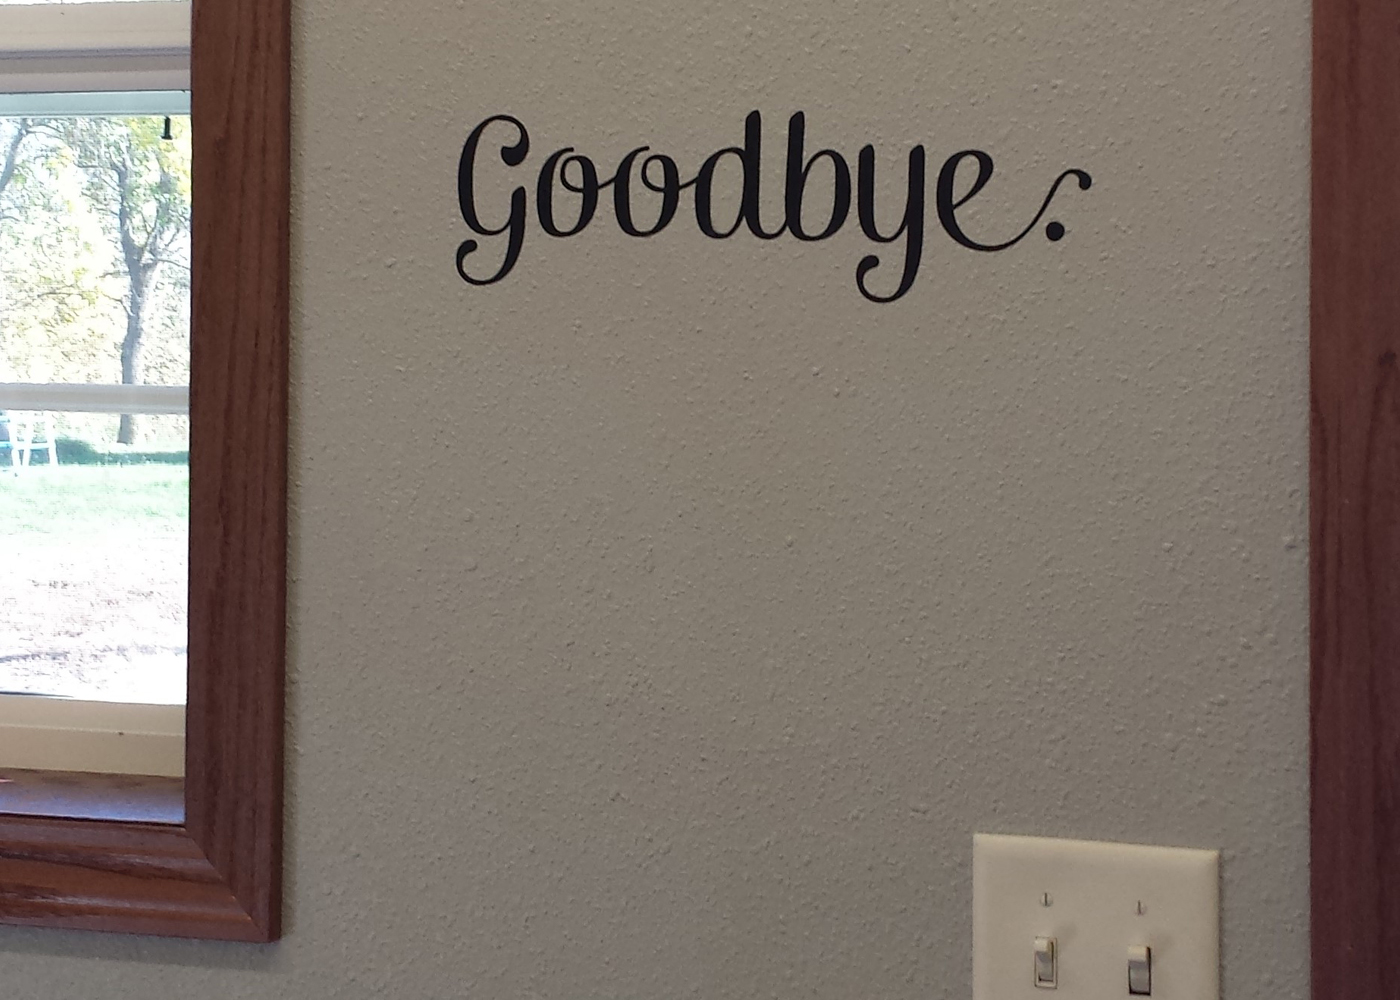 da023-h-i-hello-goodbye-entry-wall-decal-saying.jpg